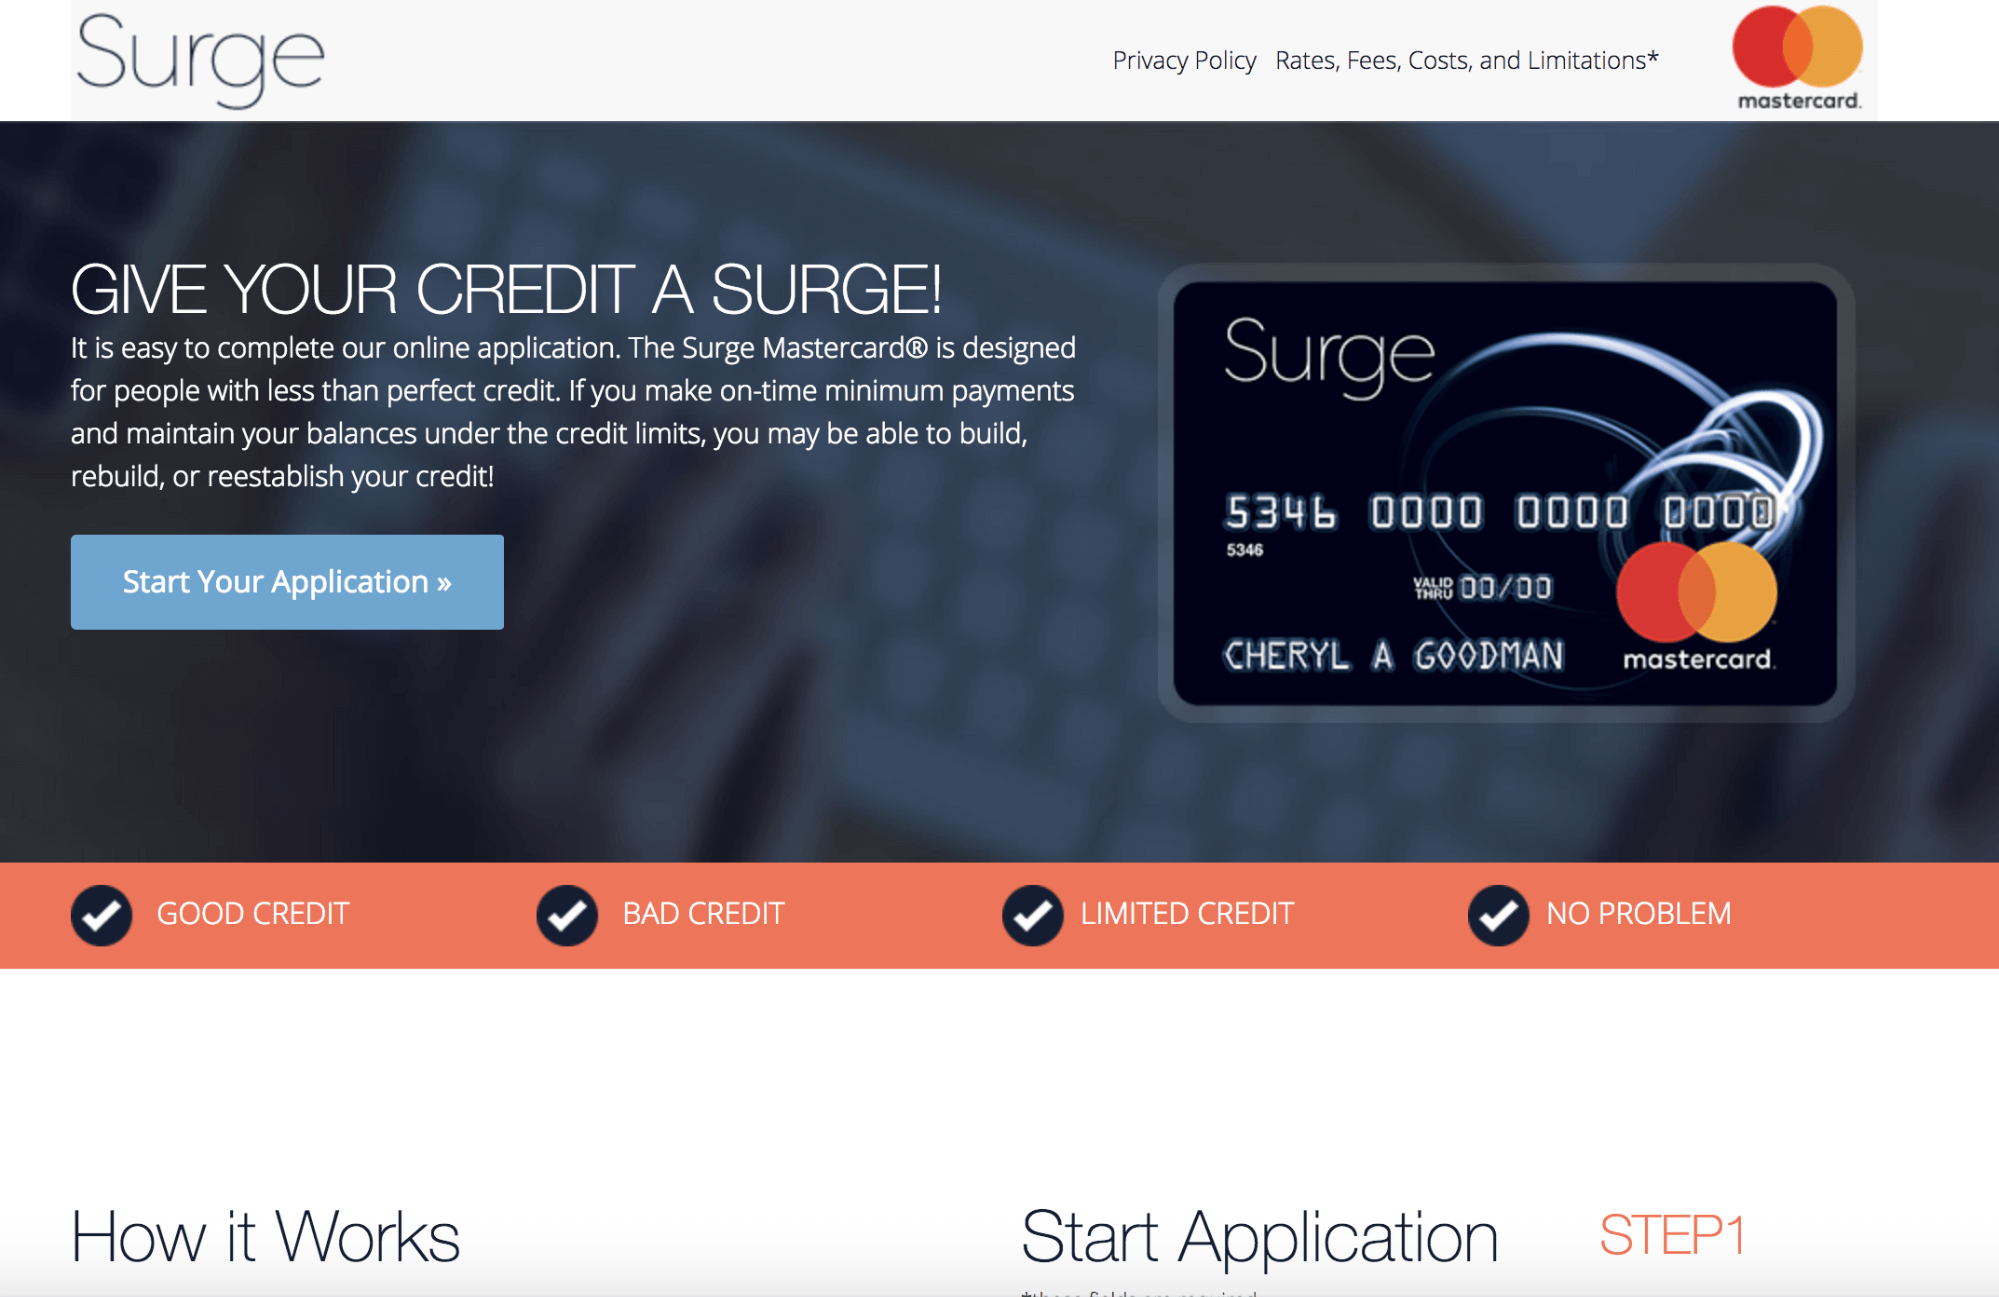 Unrivaled Credit Card Able To Build, Rebuild, Or Reestablish Your Credit! – Surge MasterCard